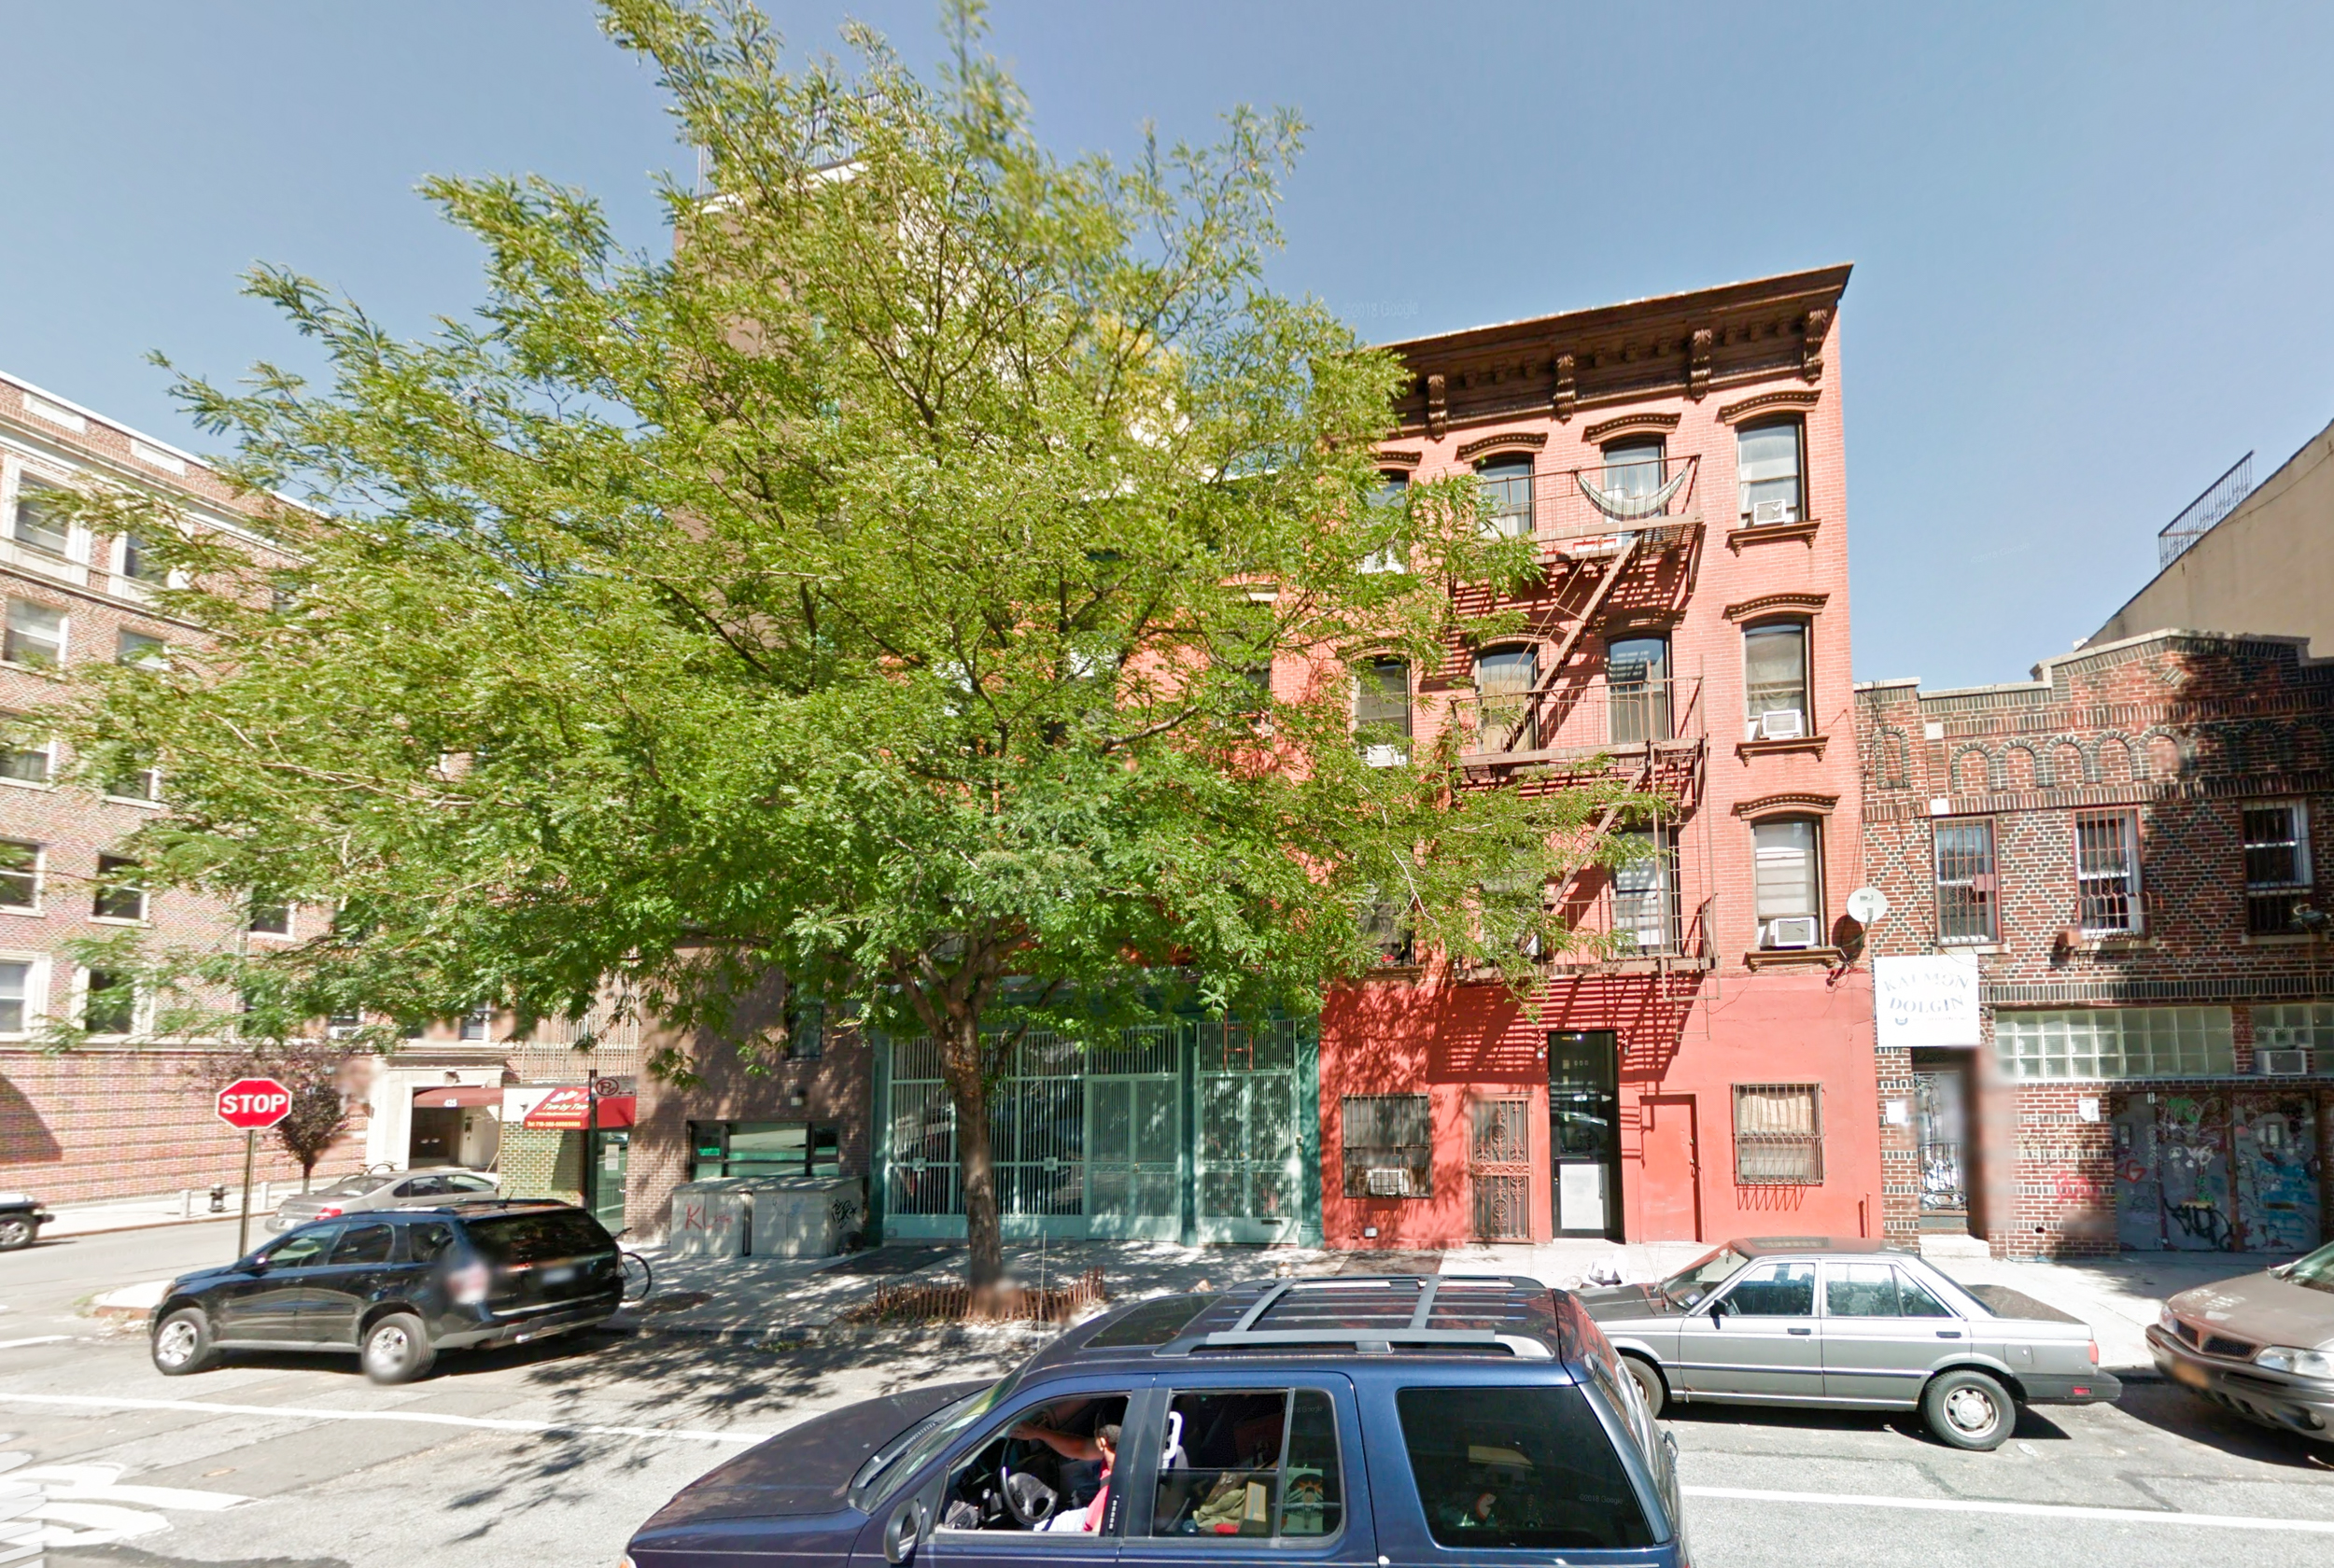 445 Grand Avenue, via Google Maps